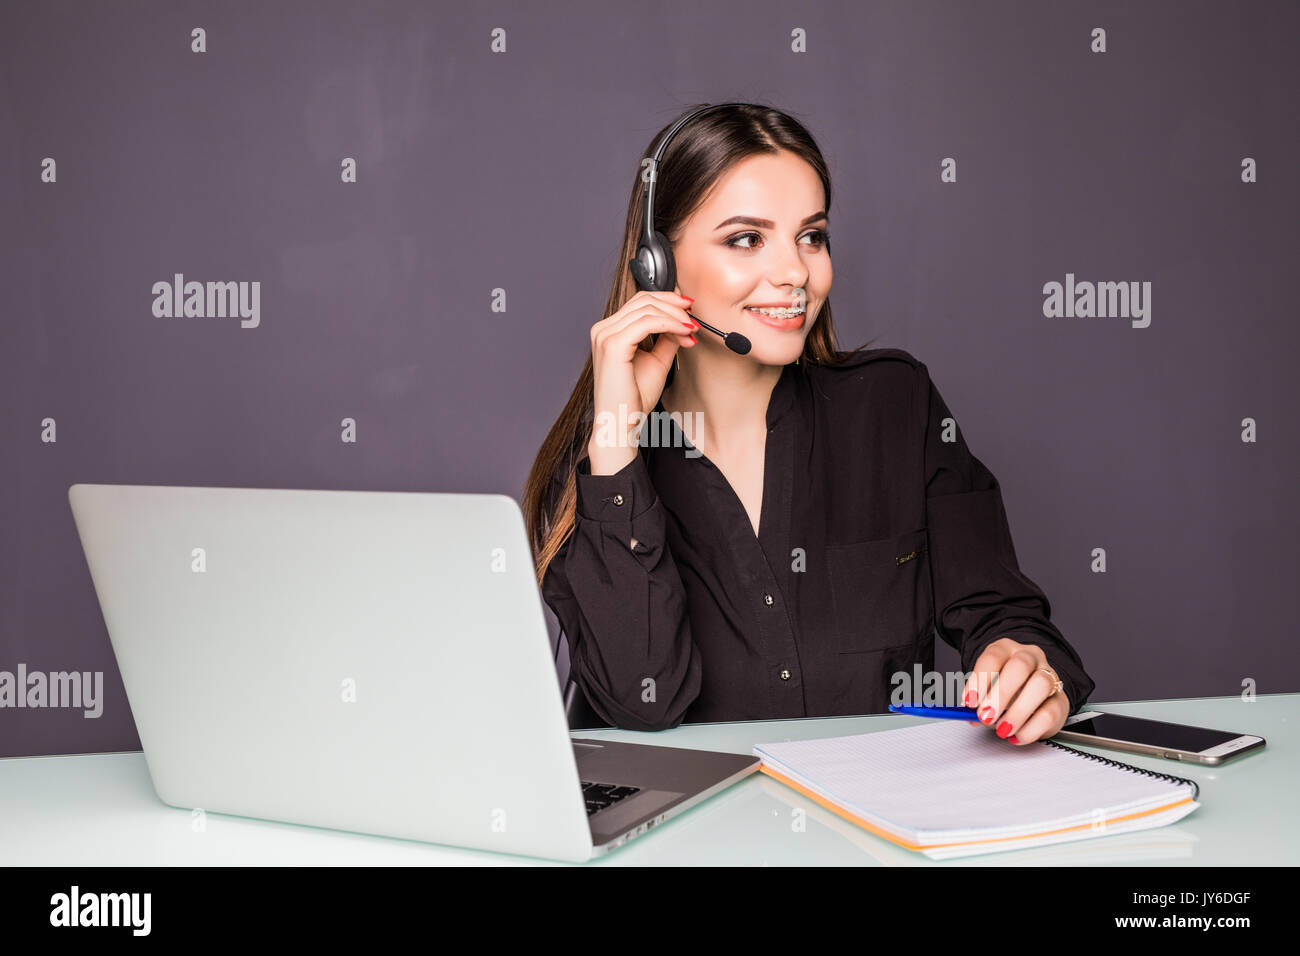 Portrait of beautiful business woman working at her desk with headset and laptop Stock Photo